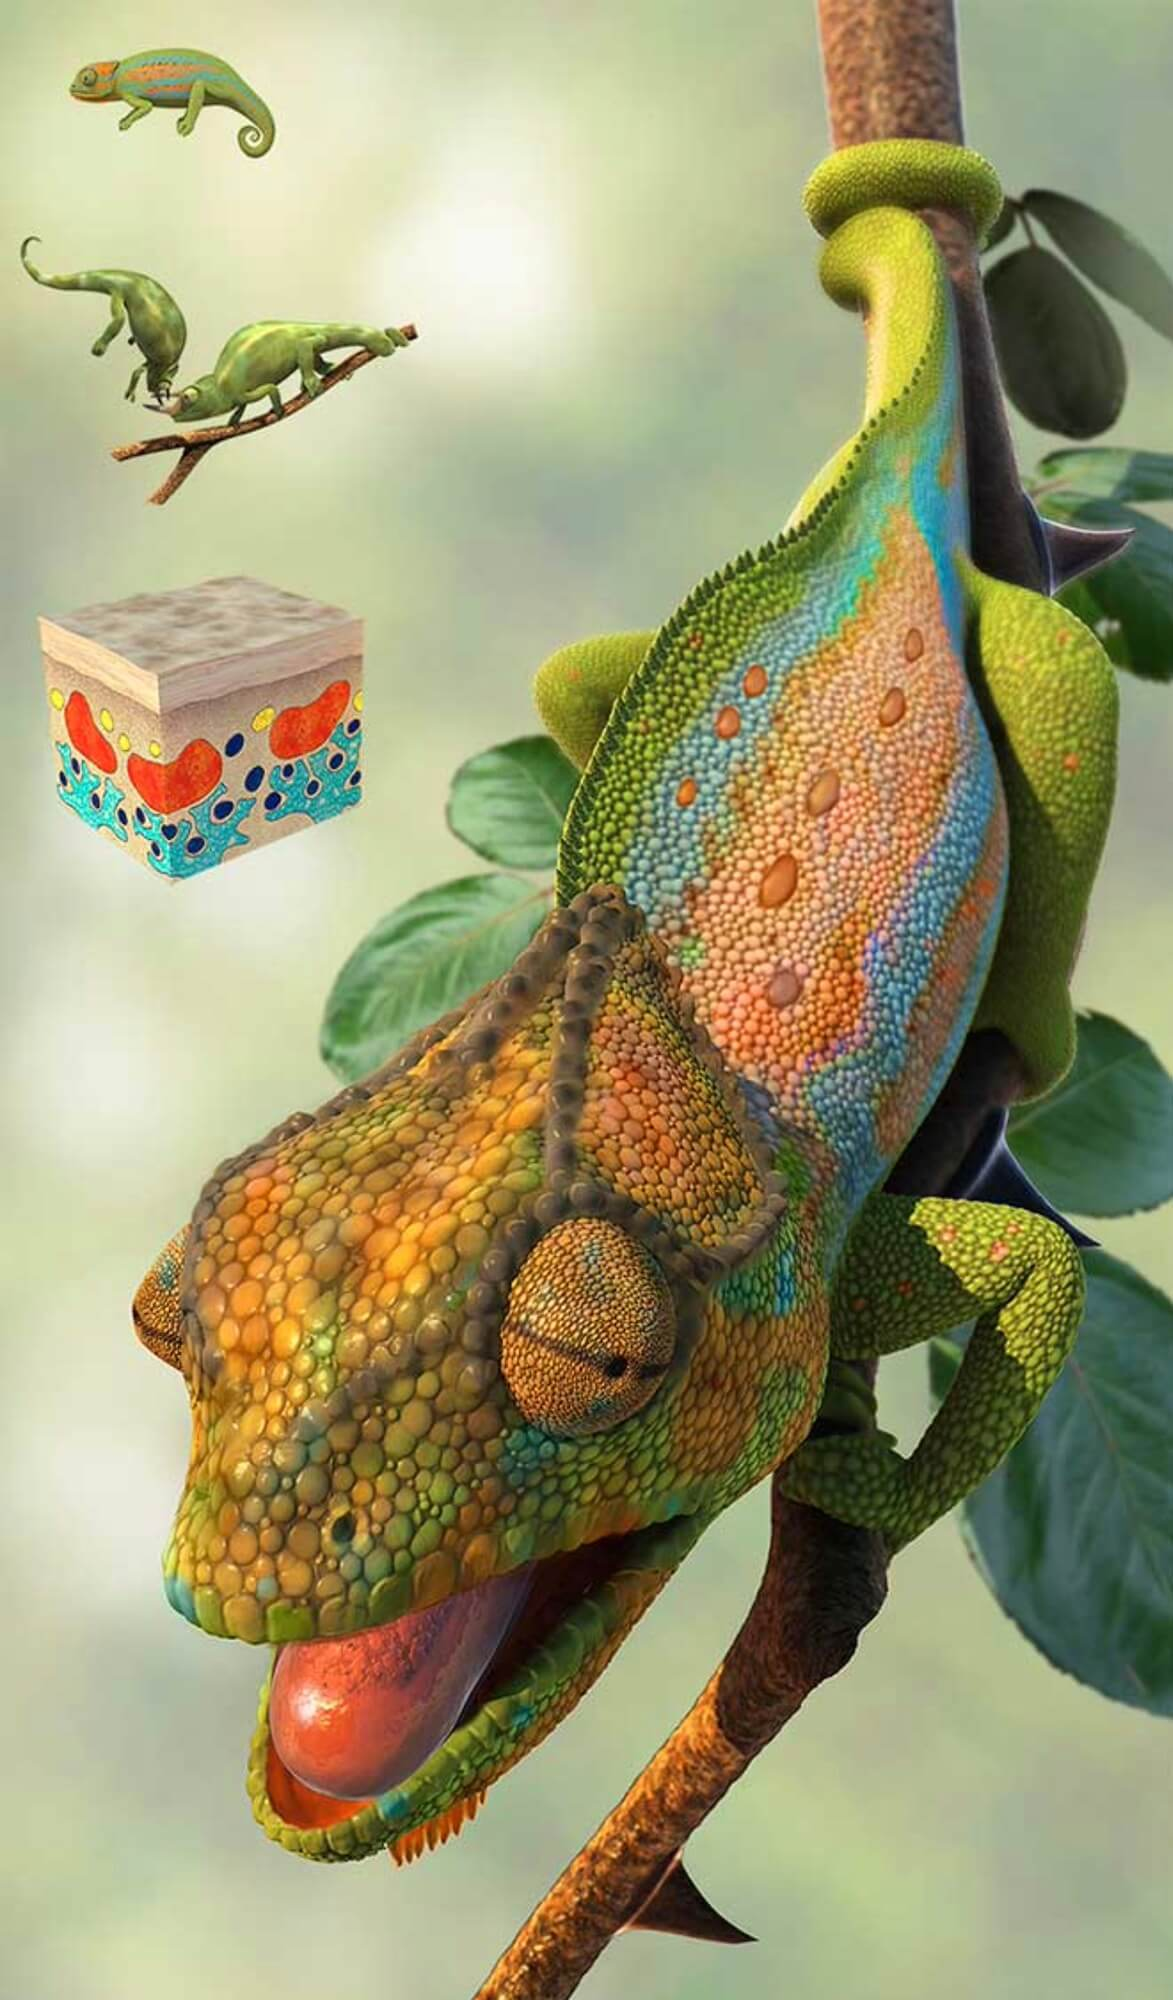 Chameleon by Barry Croucher